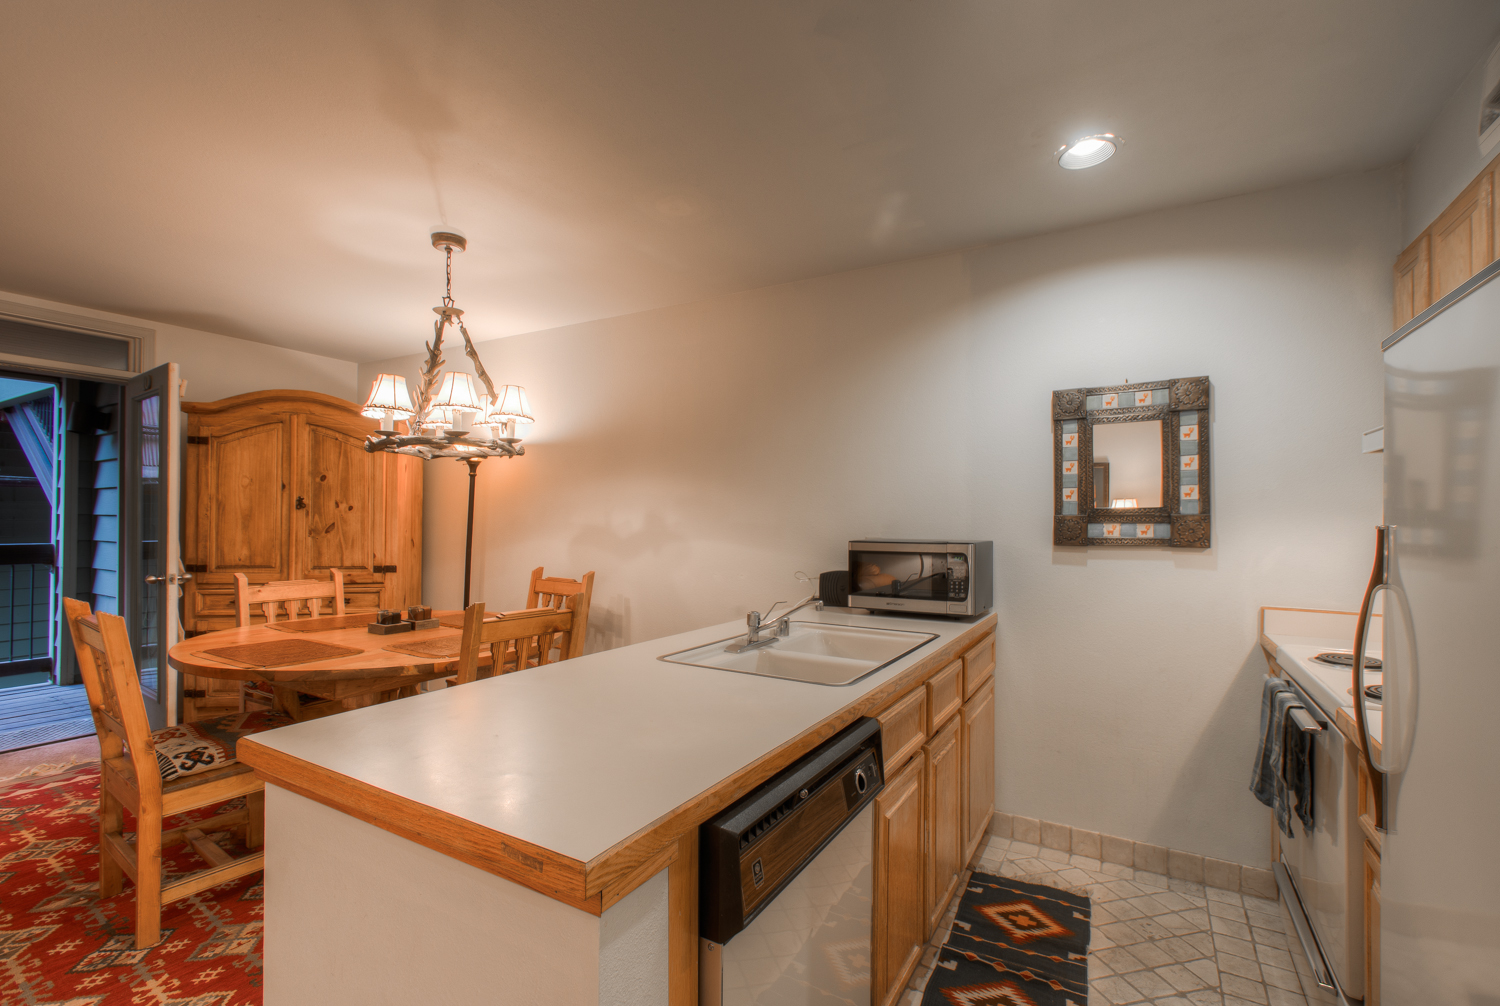 Kitchen with Refrigerator, Dishwasher, and Microwave